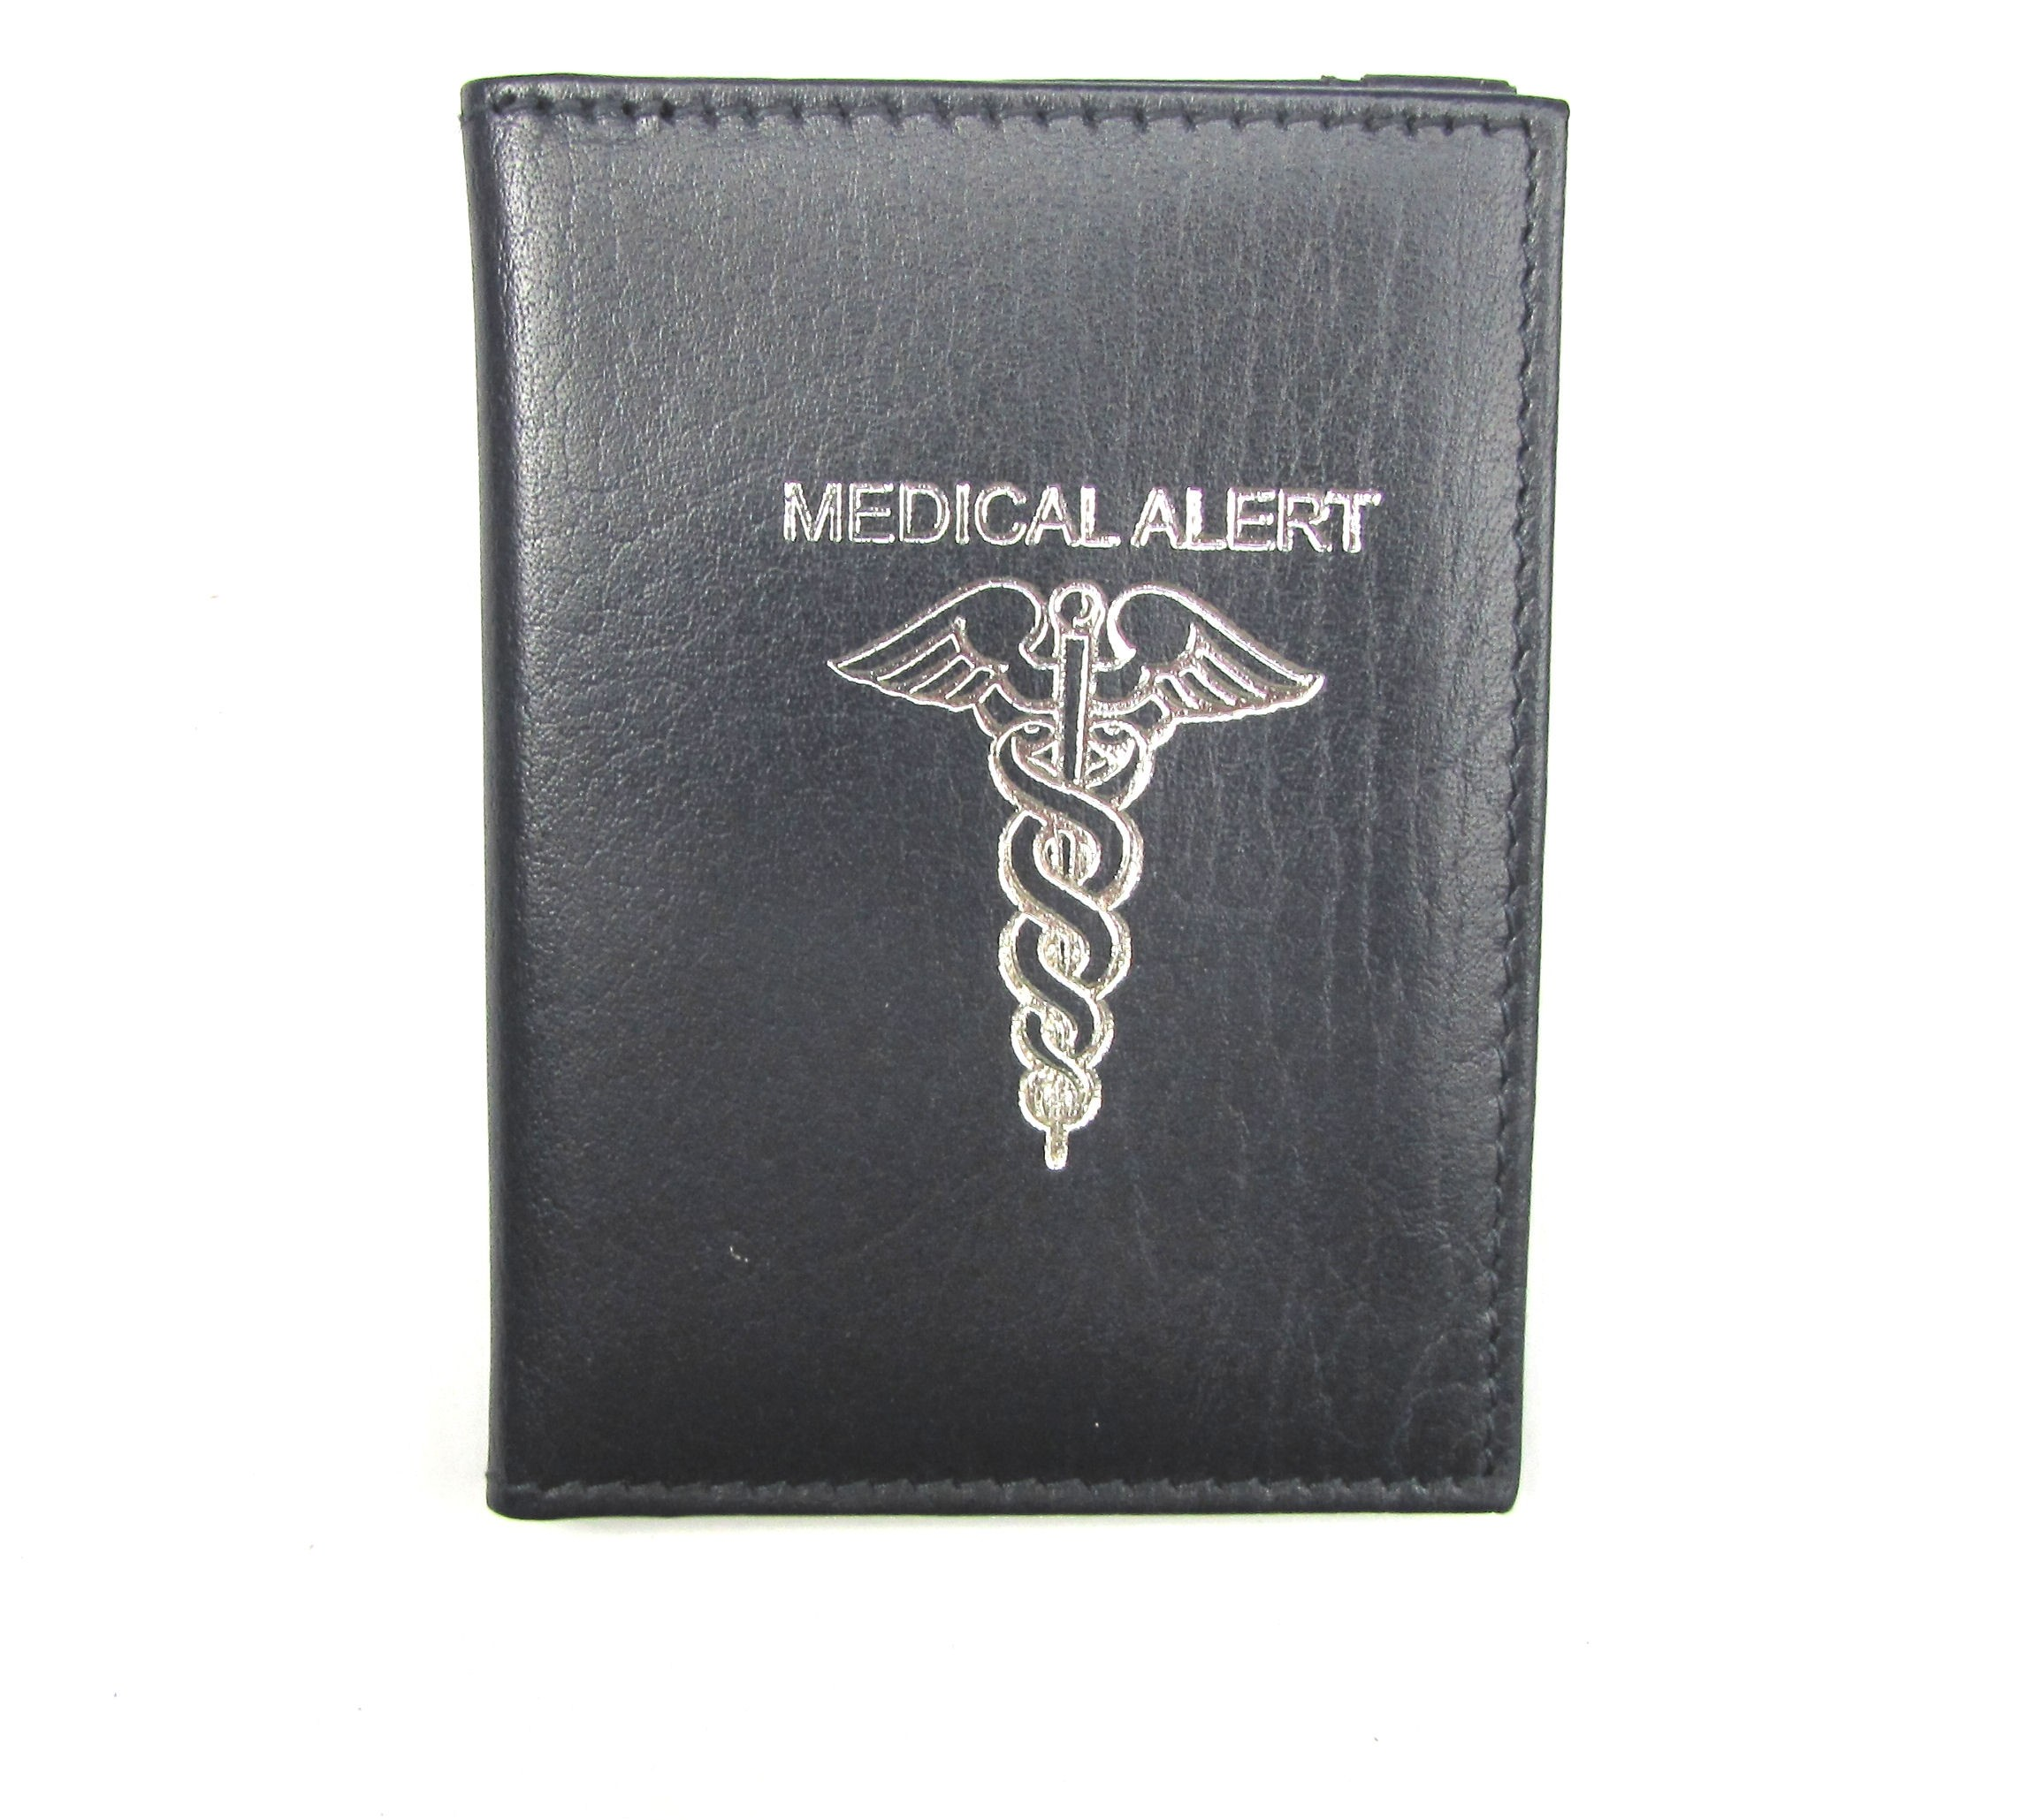 MEDICAL ALERT CARD HOLDER